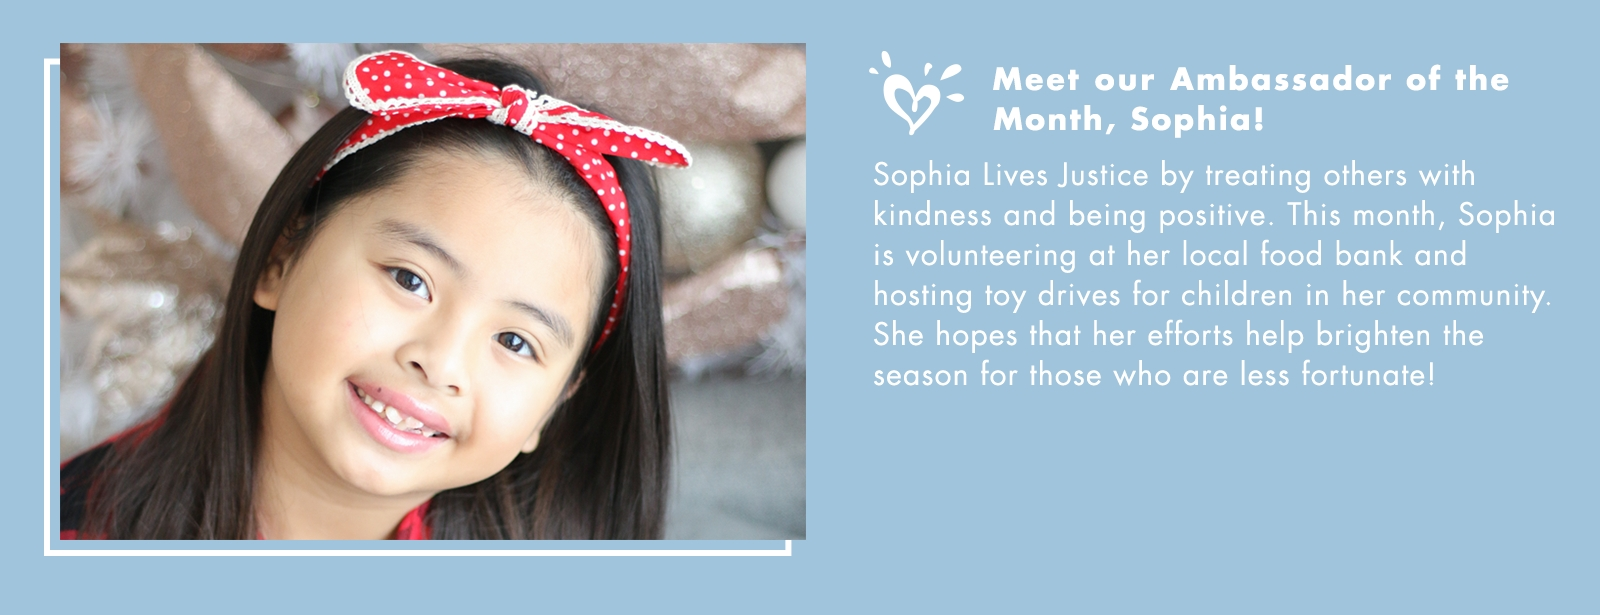 Meet our Ambassador of the Month